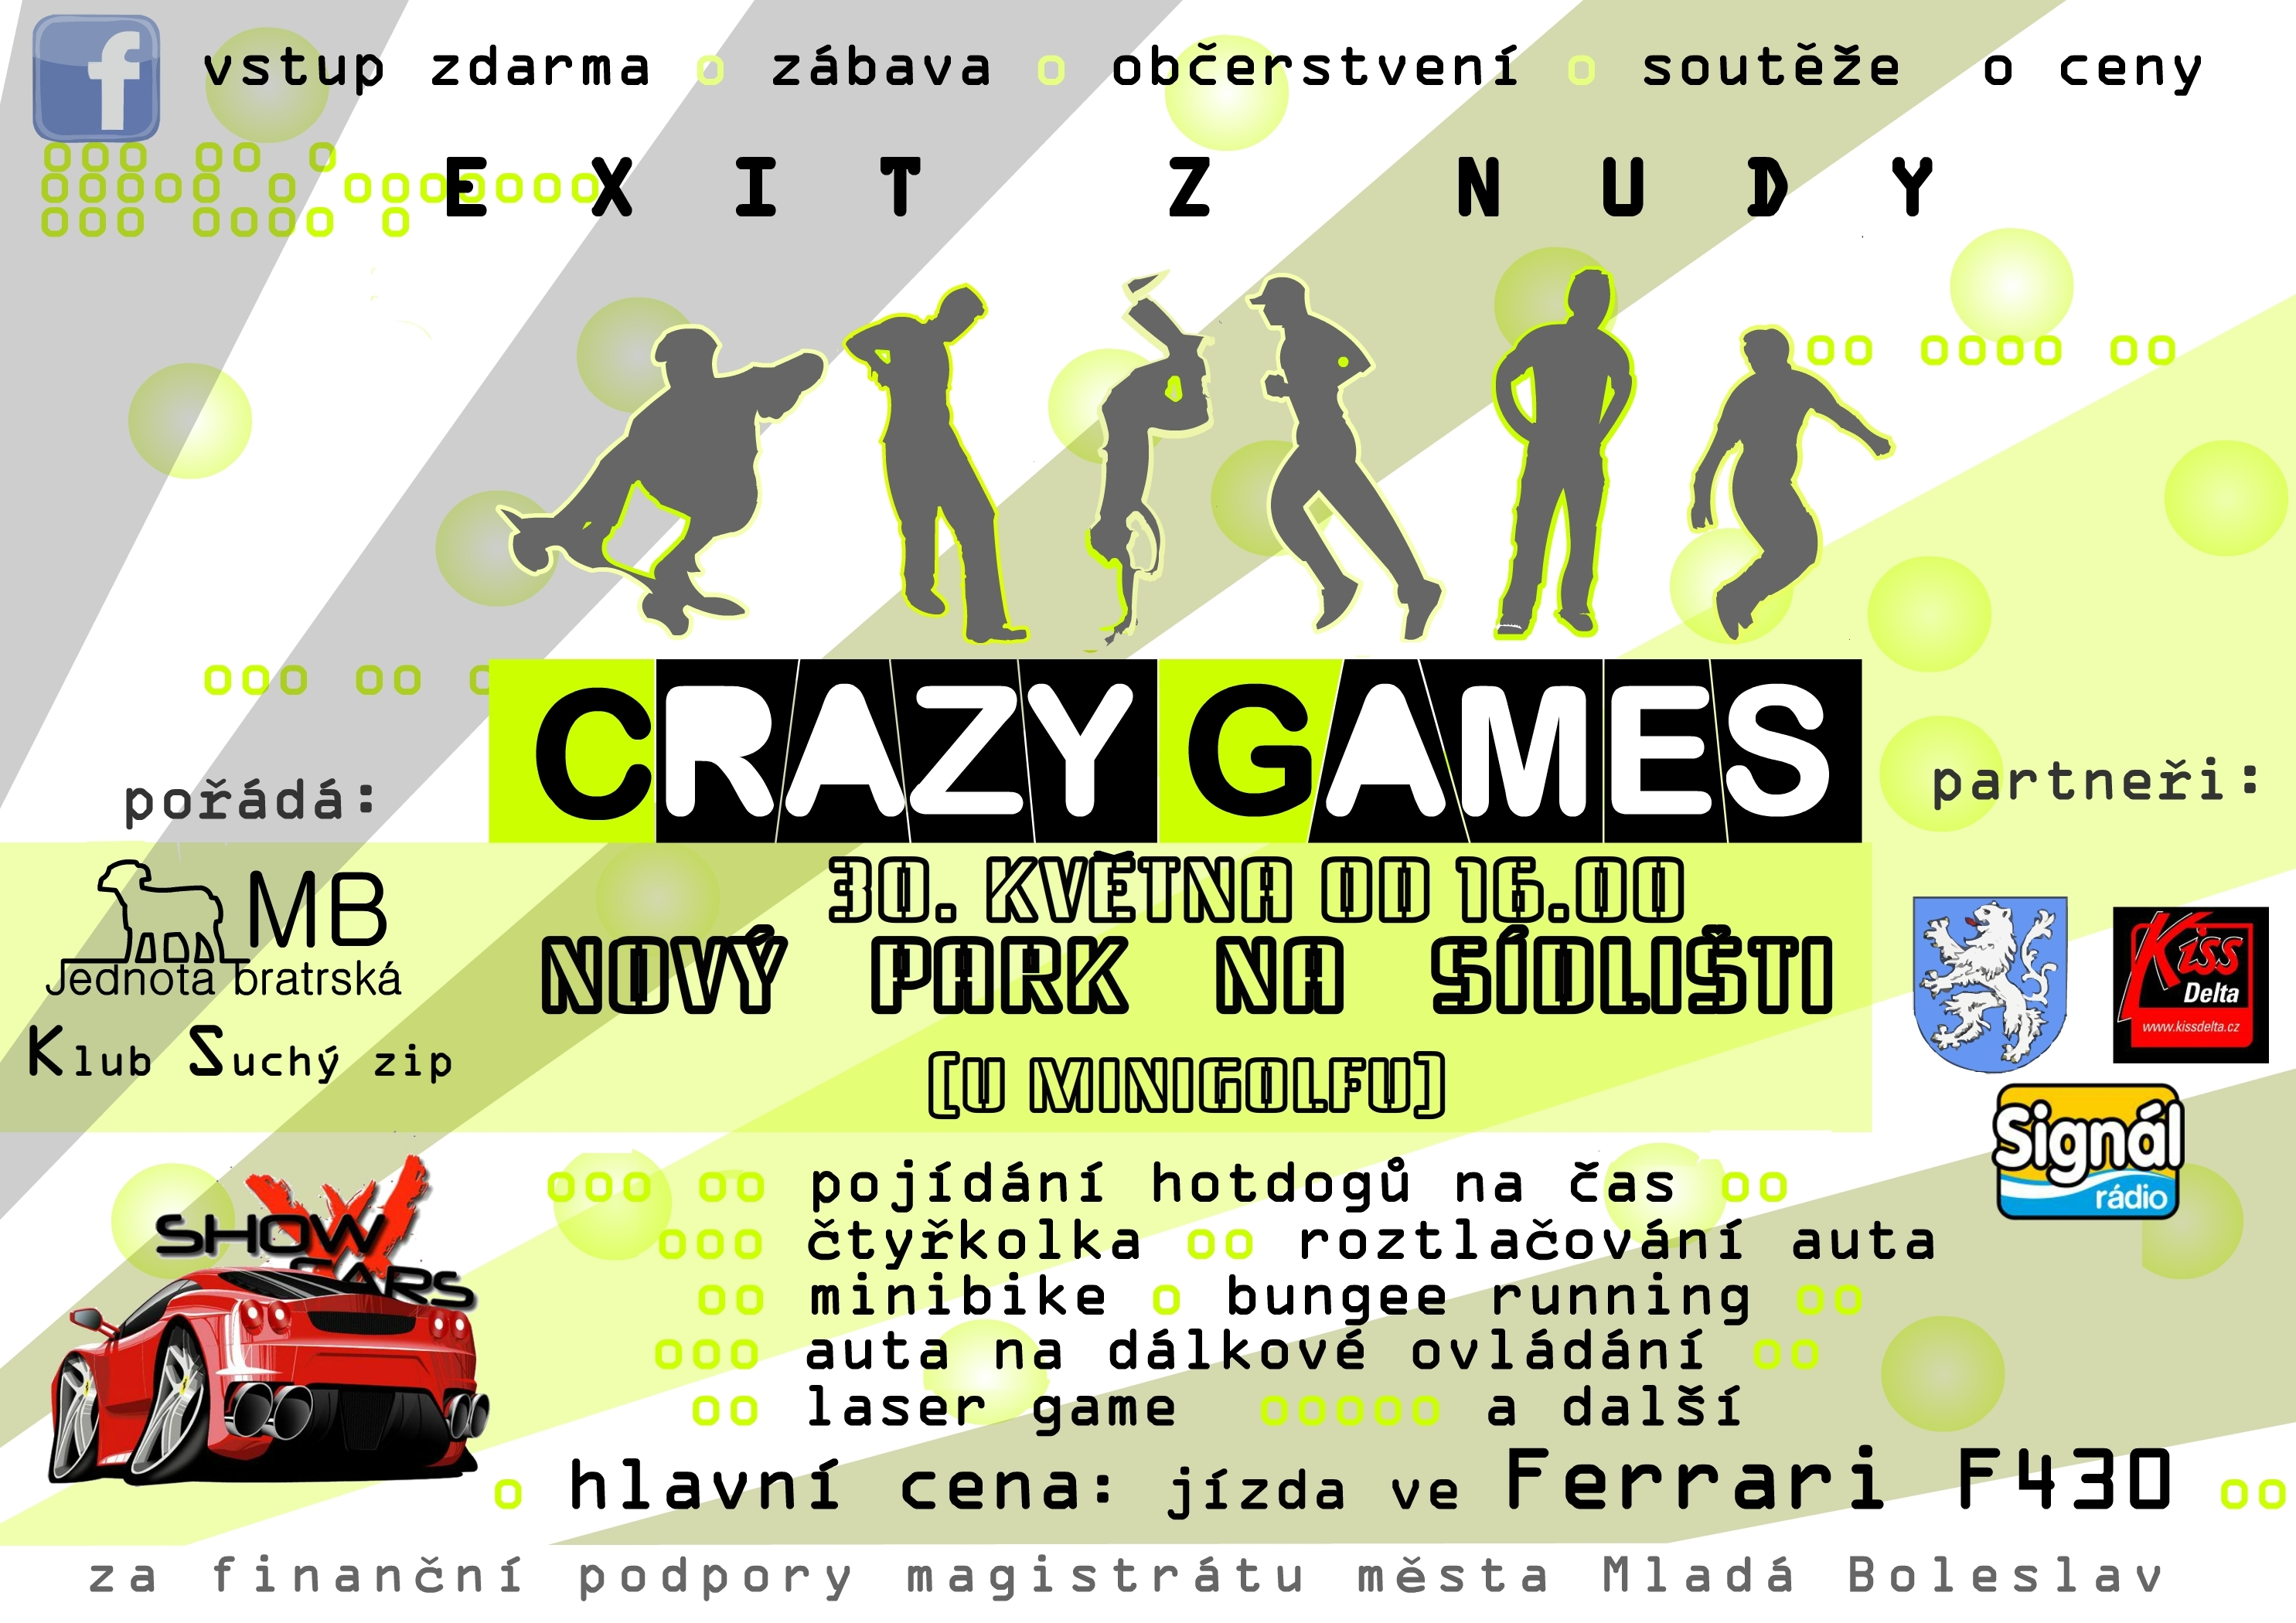 2014 Crazy games plakat.jpg